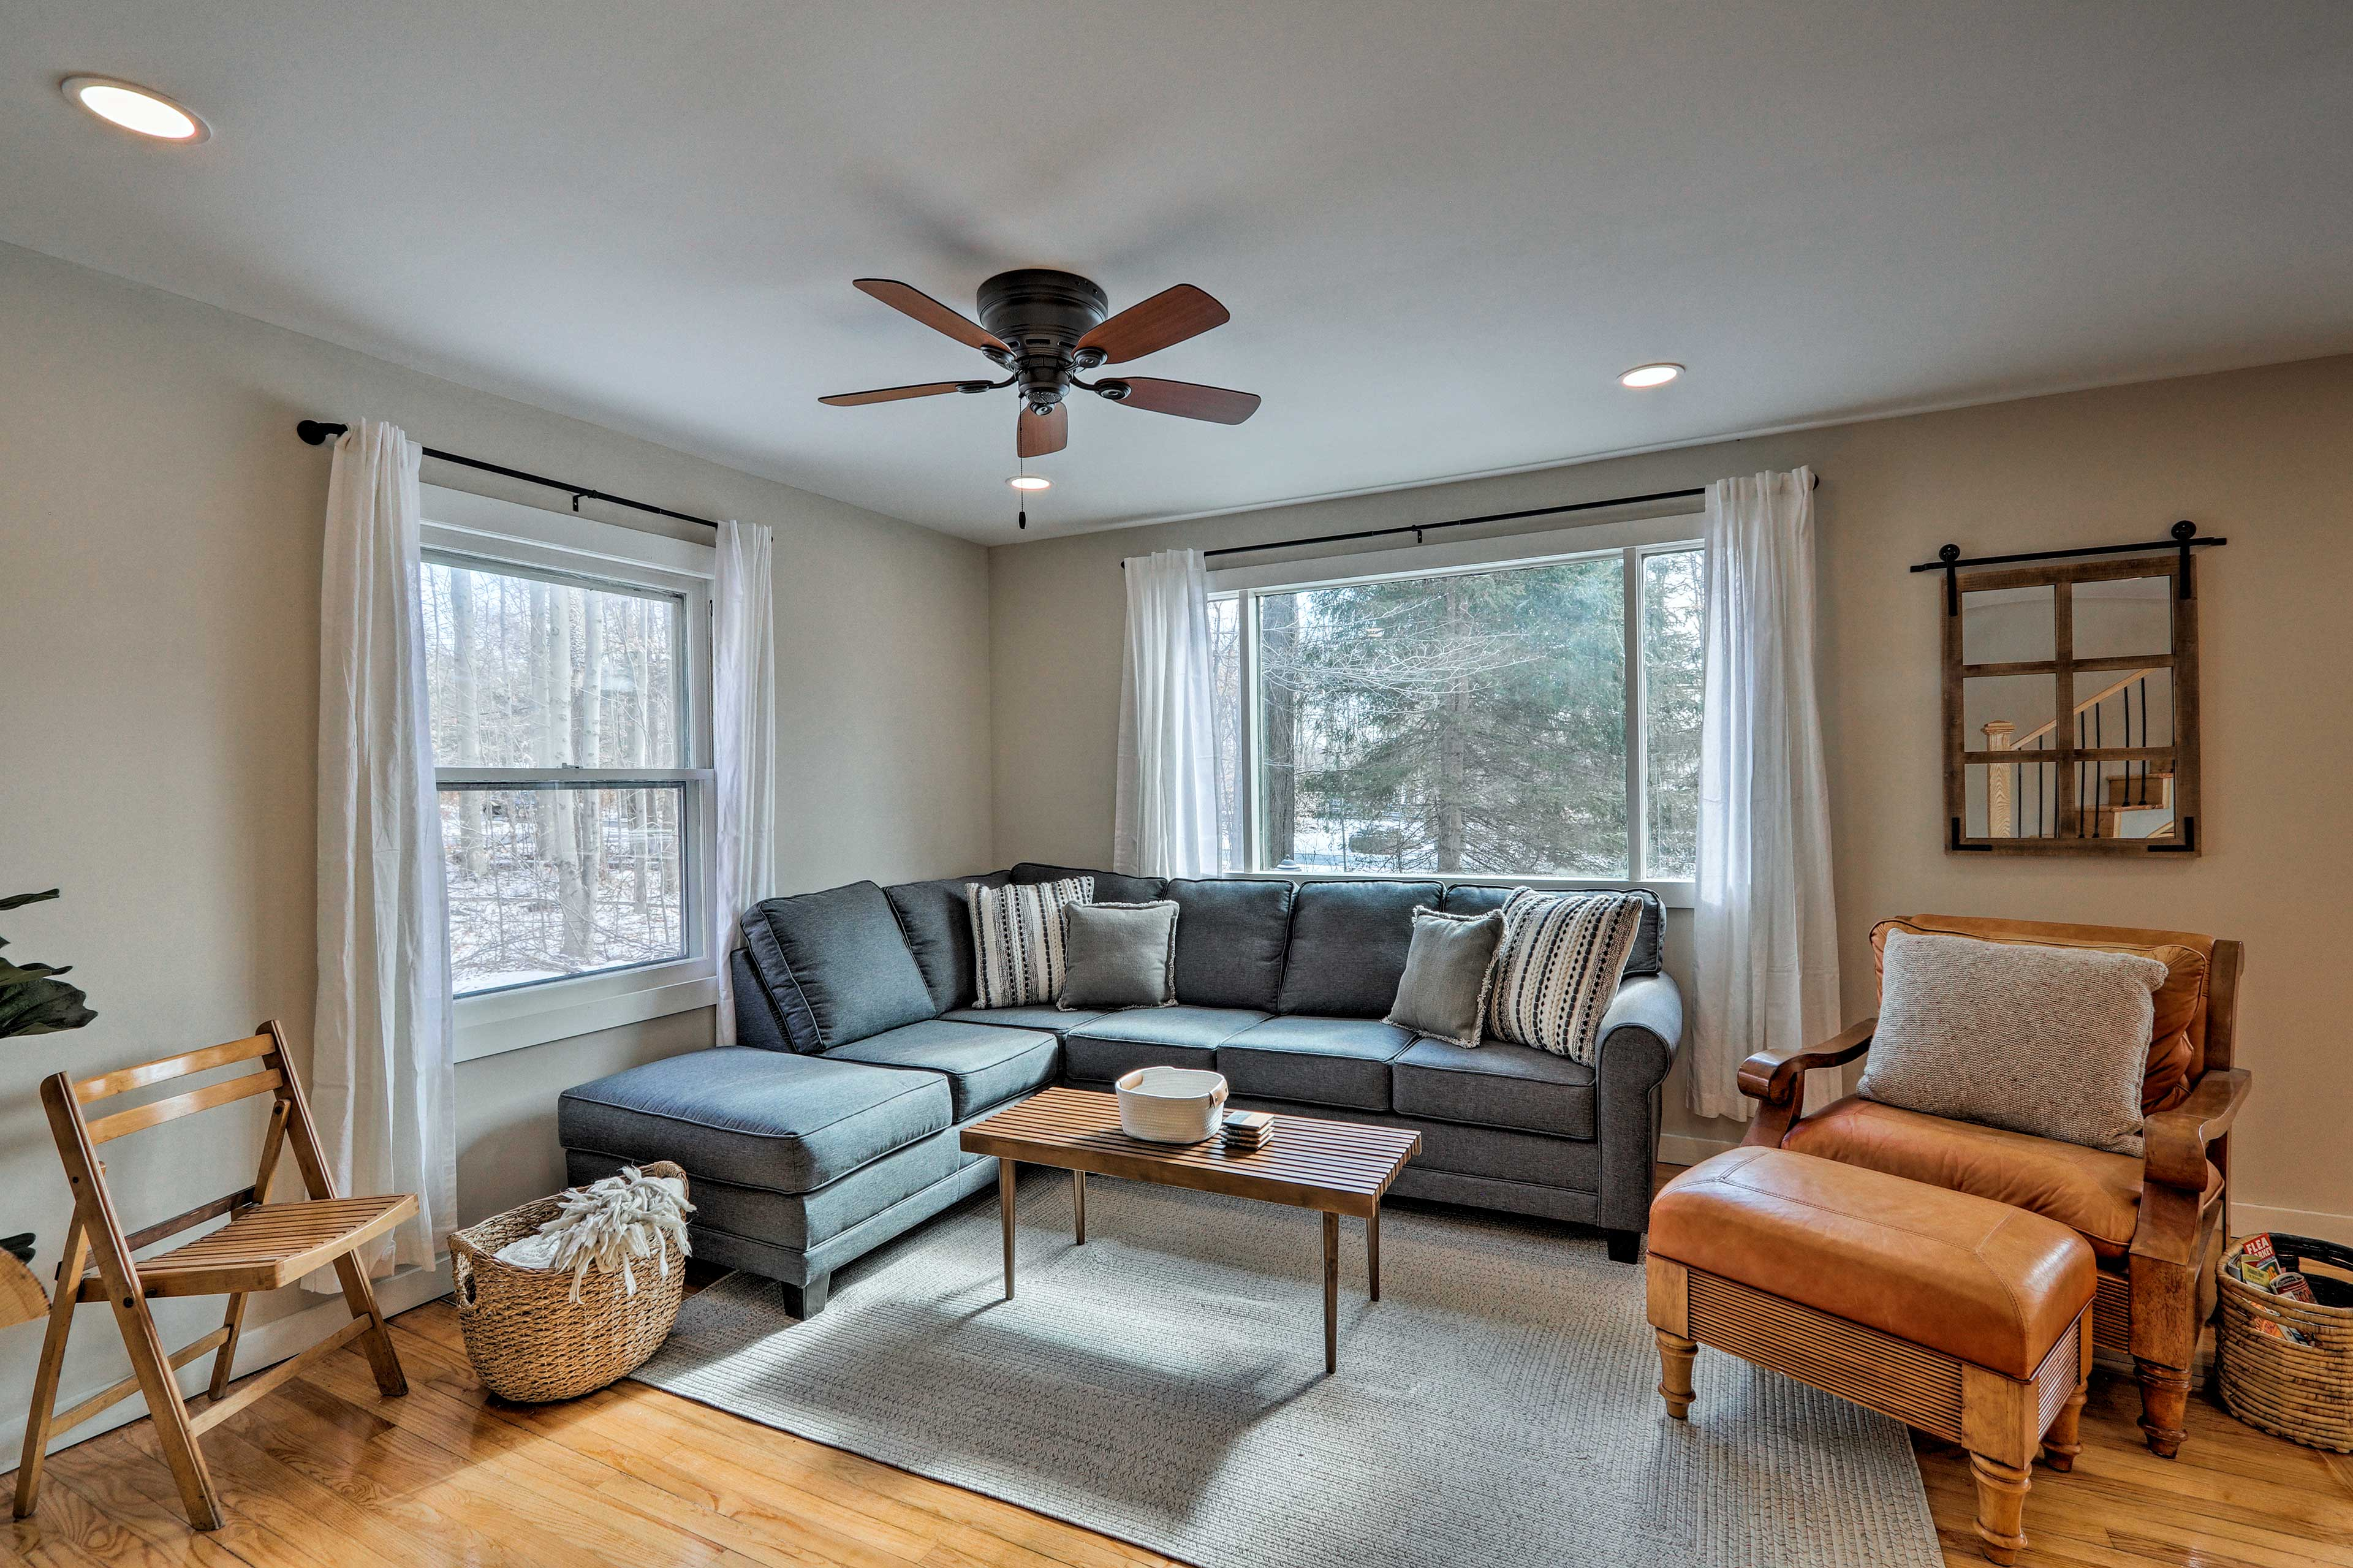 Make yourself at home in this Pocono Pines vacation rental!